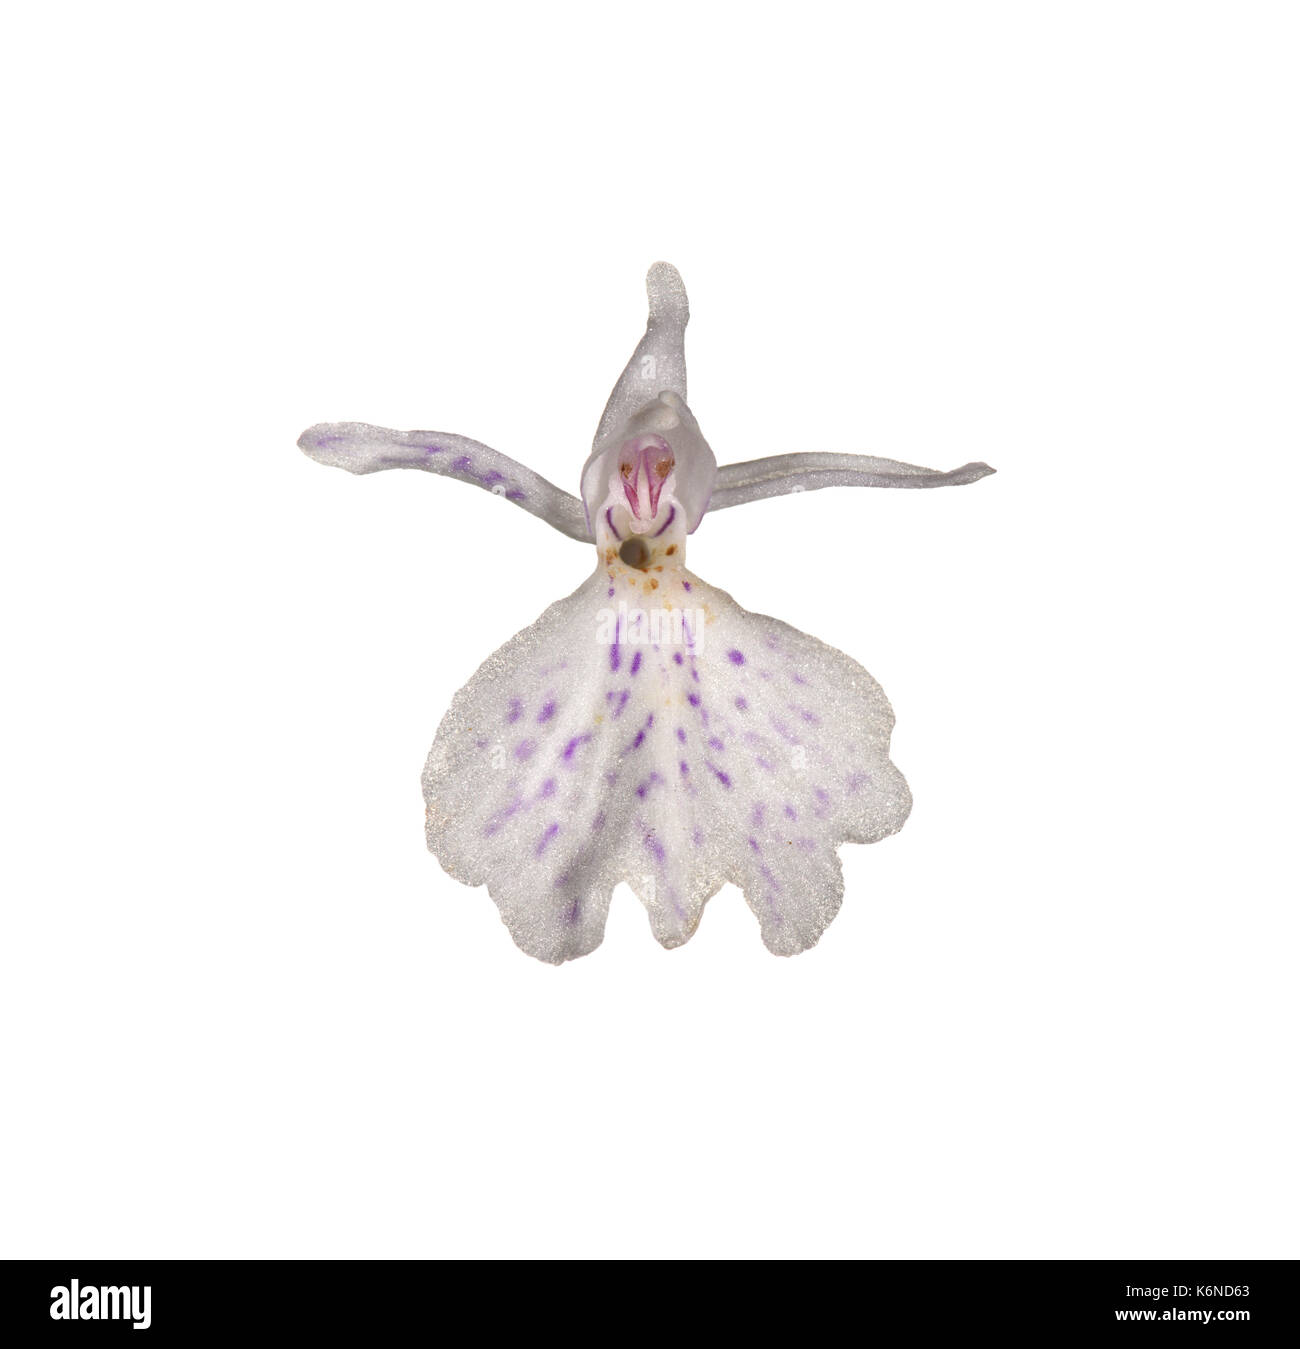 Heath Spotted-orchid - Dactylorhiza maculata - Stock Image